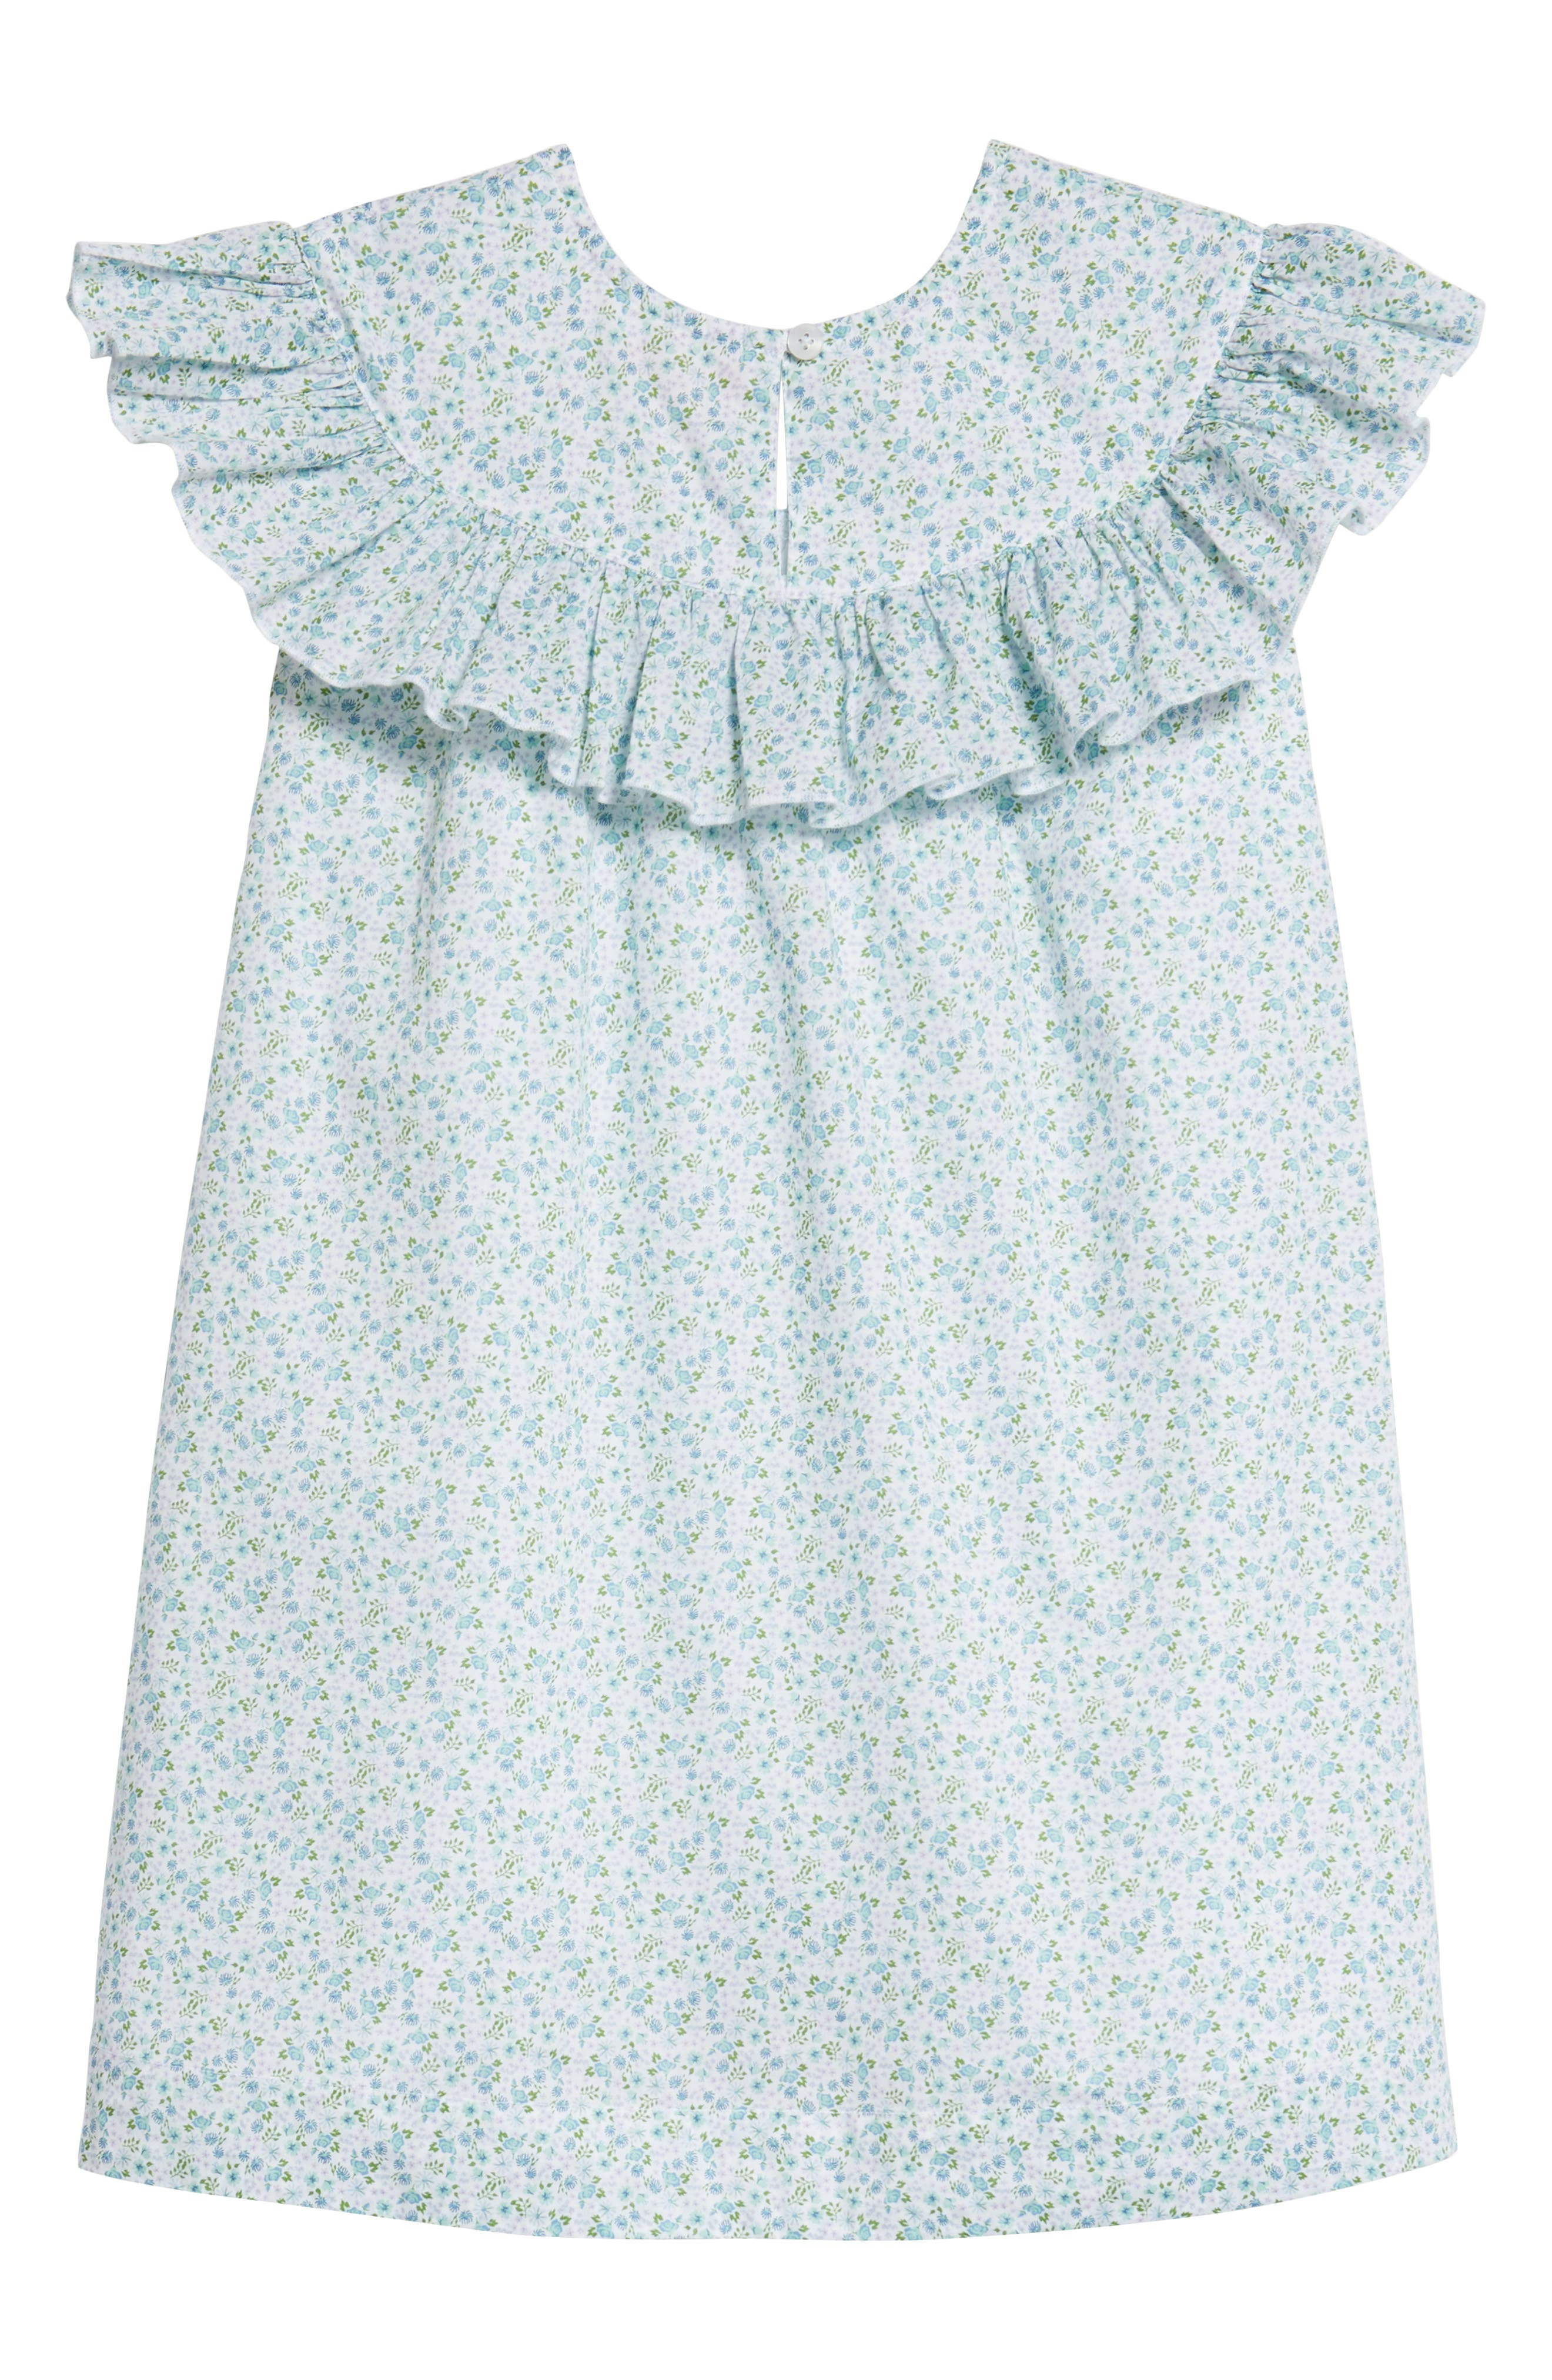 Ruffle Dress,                             Alternate thumbnail 2, color,                             White- Blue Tropic Ditsy